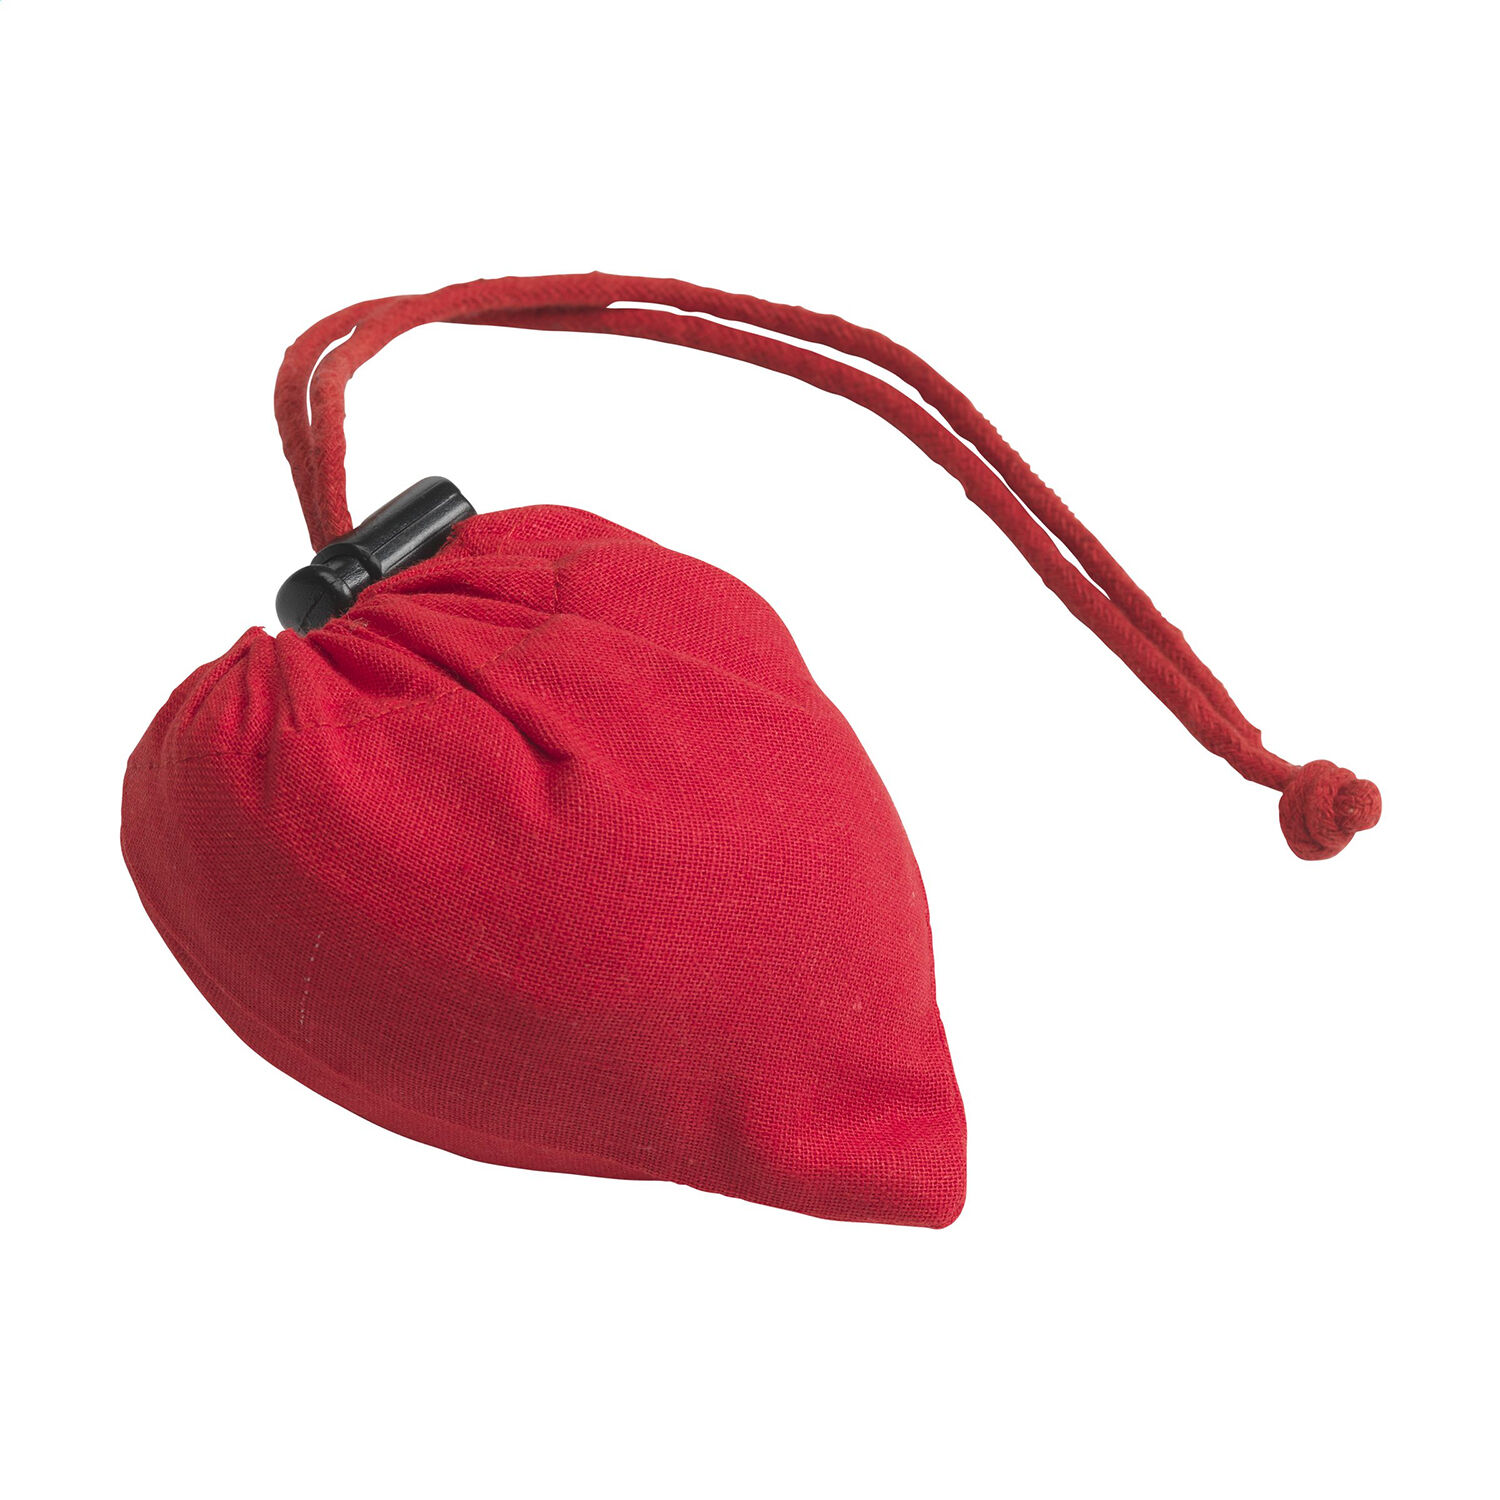 Folding Cotton Shopping Bags Red